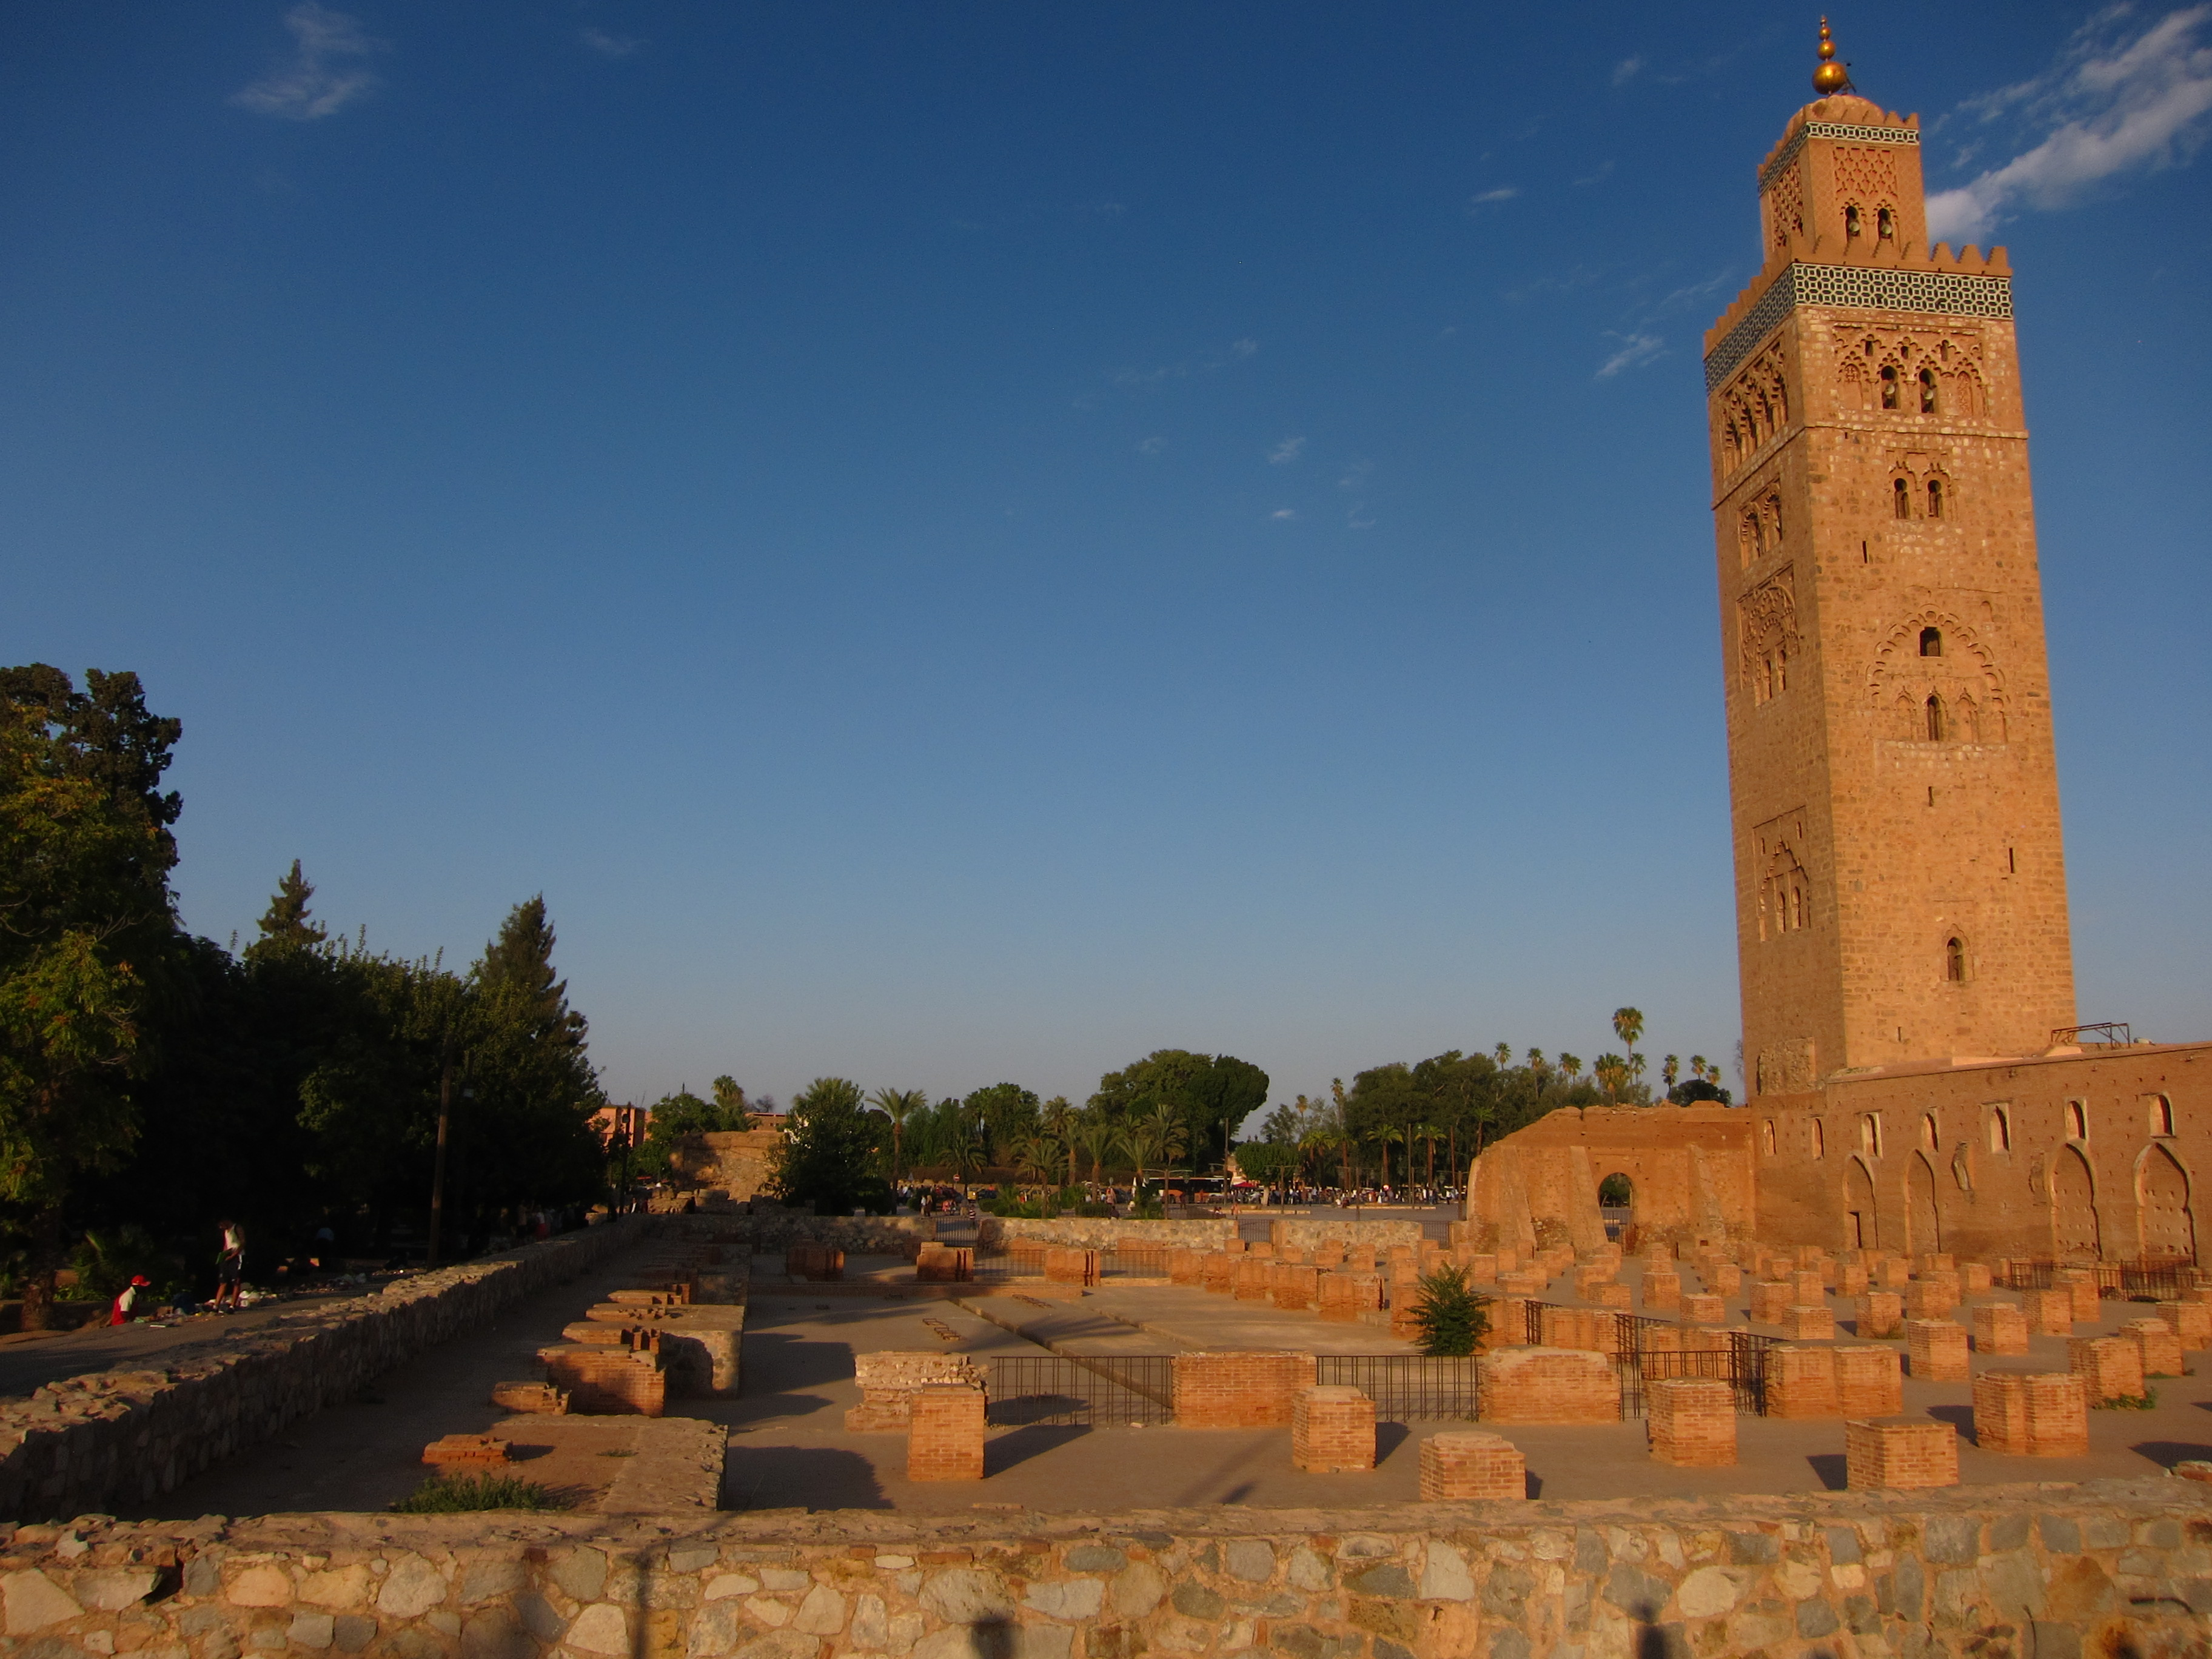 The famous 11th century Koutoubia mosque stands sentinel over Marrakech